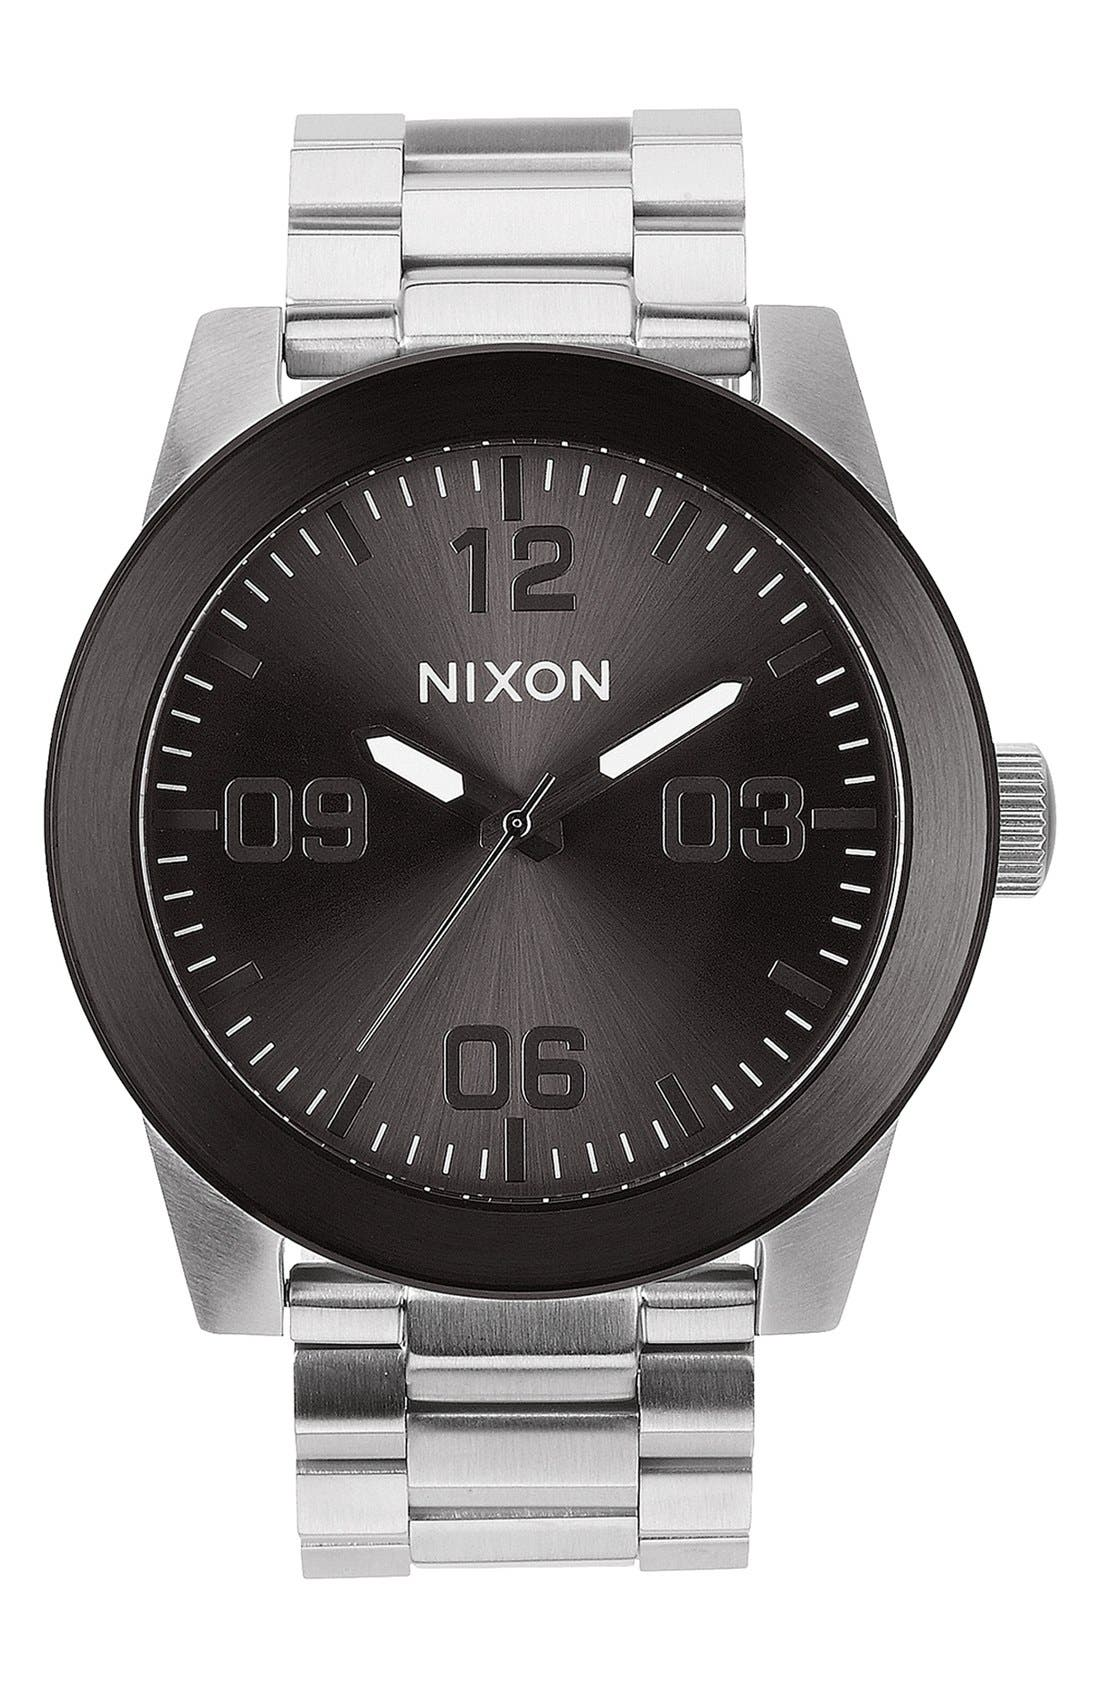 NIXON 'The Corporal' Bracelet Watch, 48mm, Main, color, SILVER/ GUNMETAL